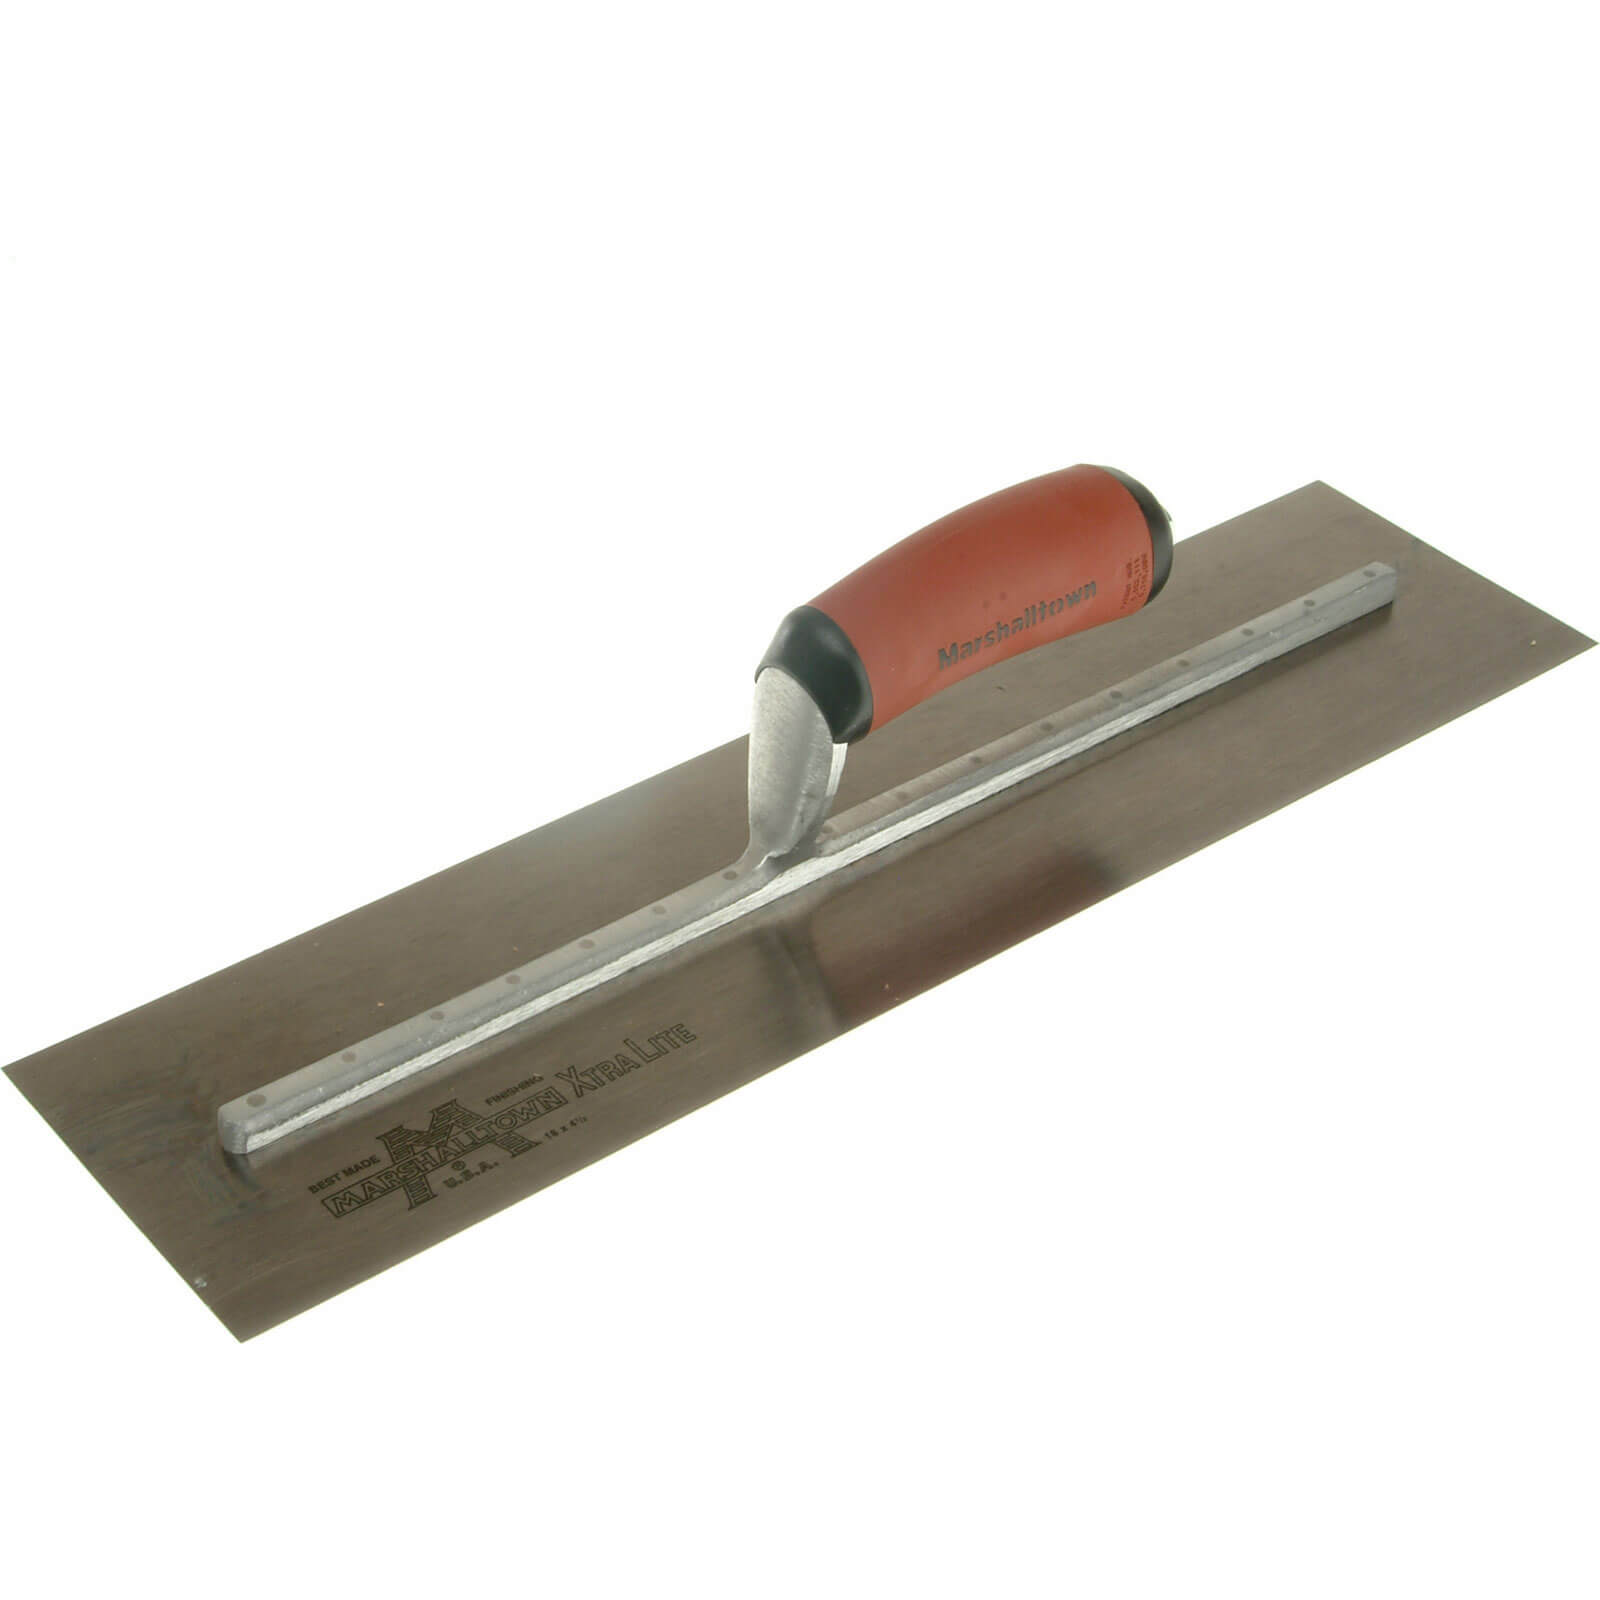 "Image of Marshalltown Cement Finishing Trowel 18"" 4"" 1/2"""